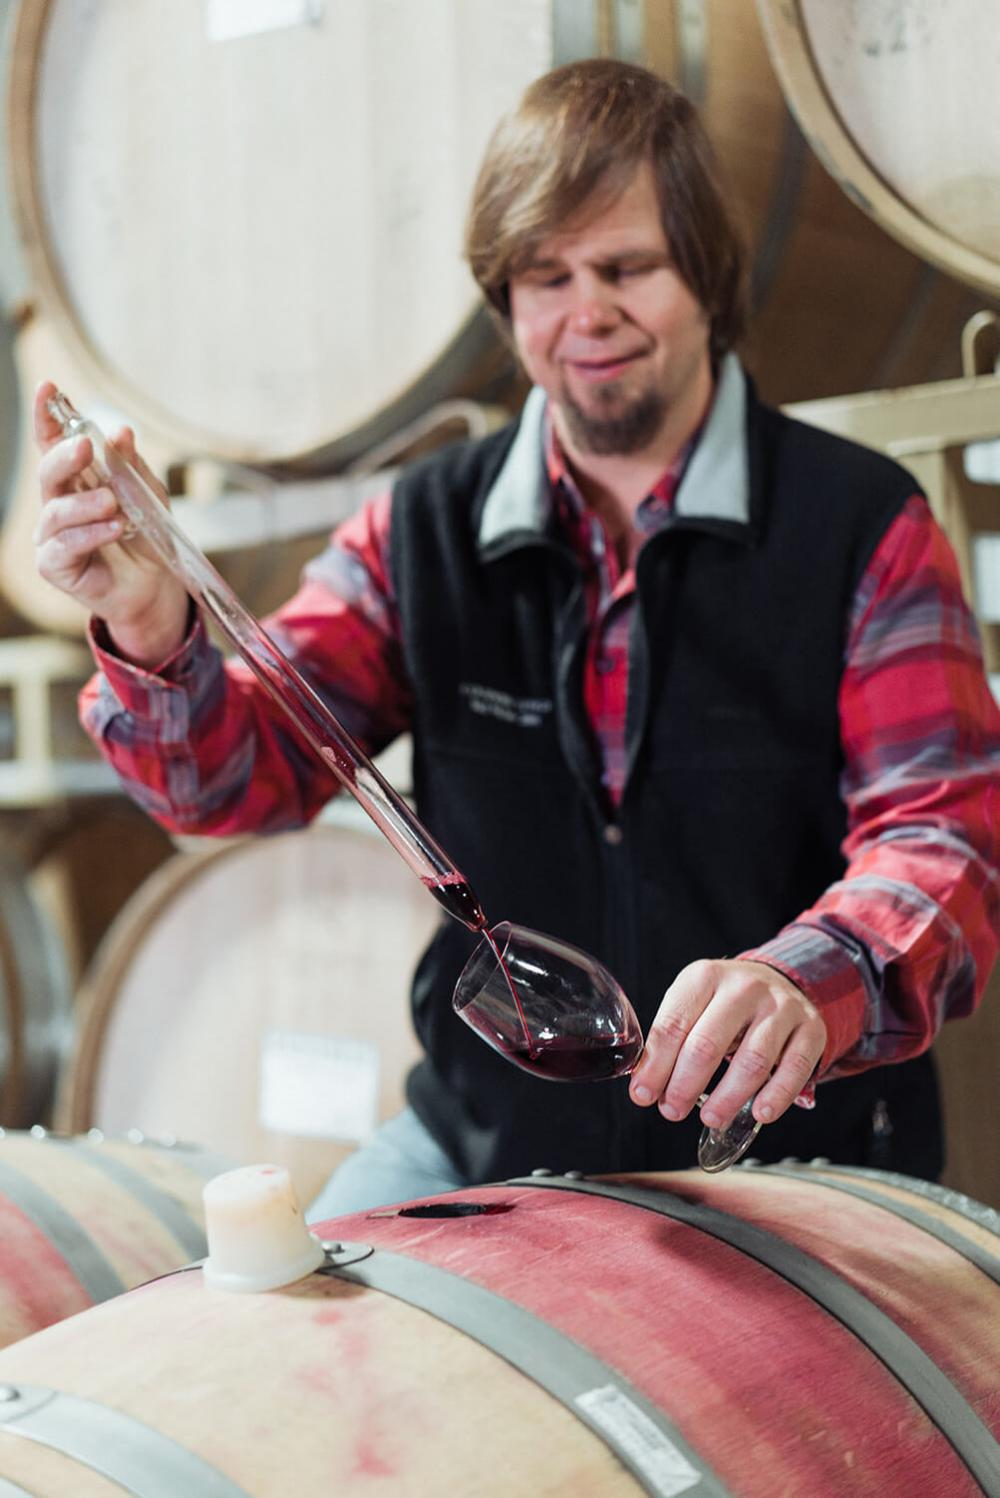 Murphy-Goode winemaker, Dave Ready Jr., tasting Pinot Noir